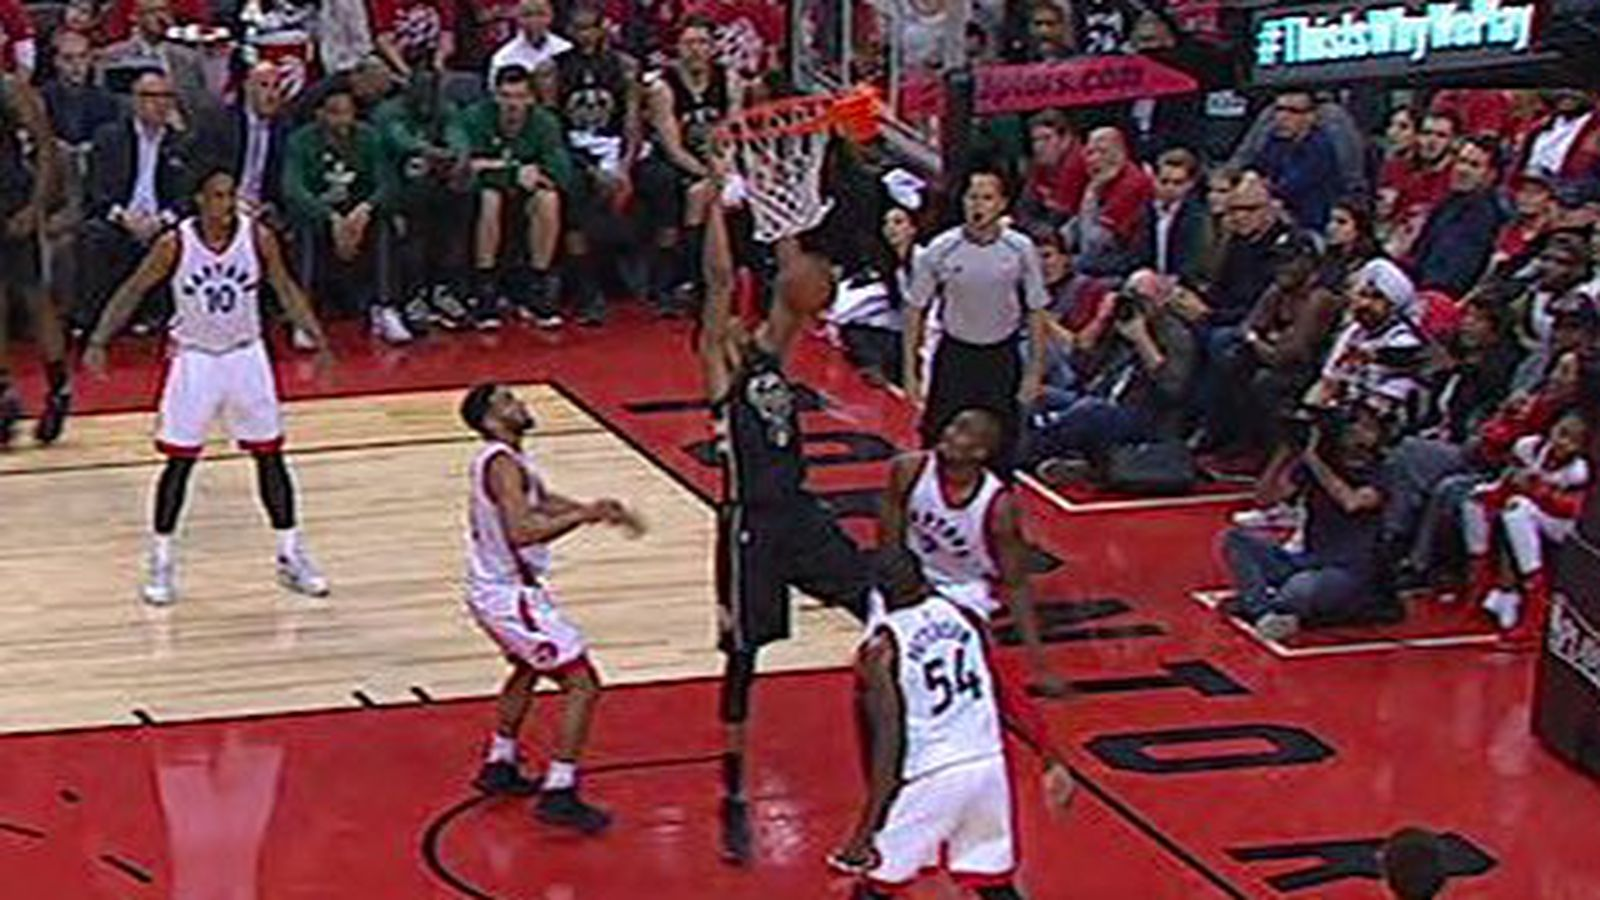 Here S A Photo Of Giannis Antetokounmpo Touching Rim And